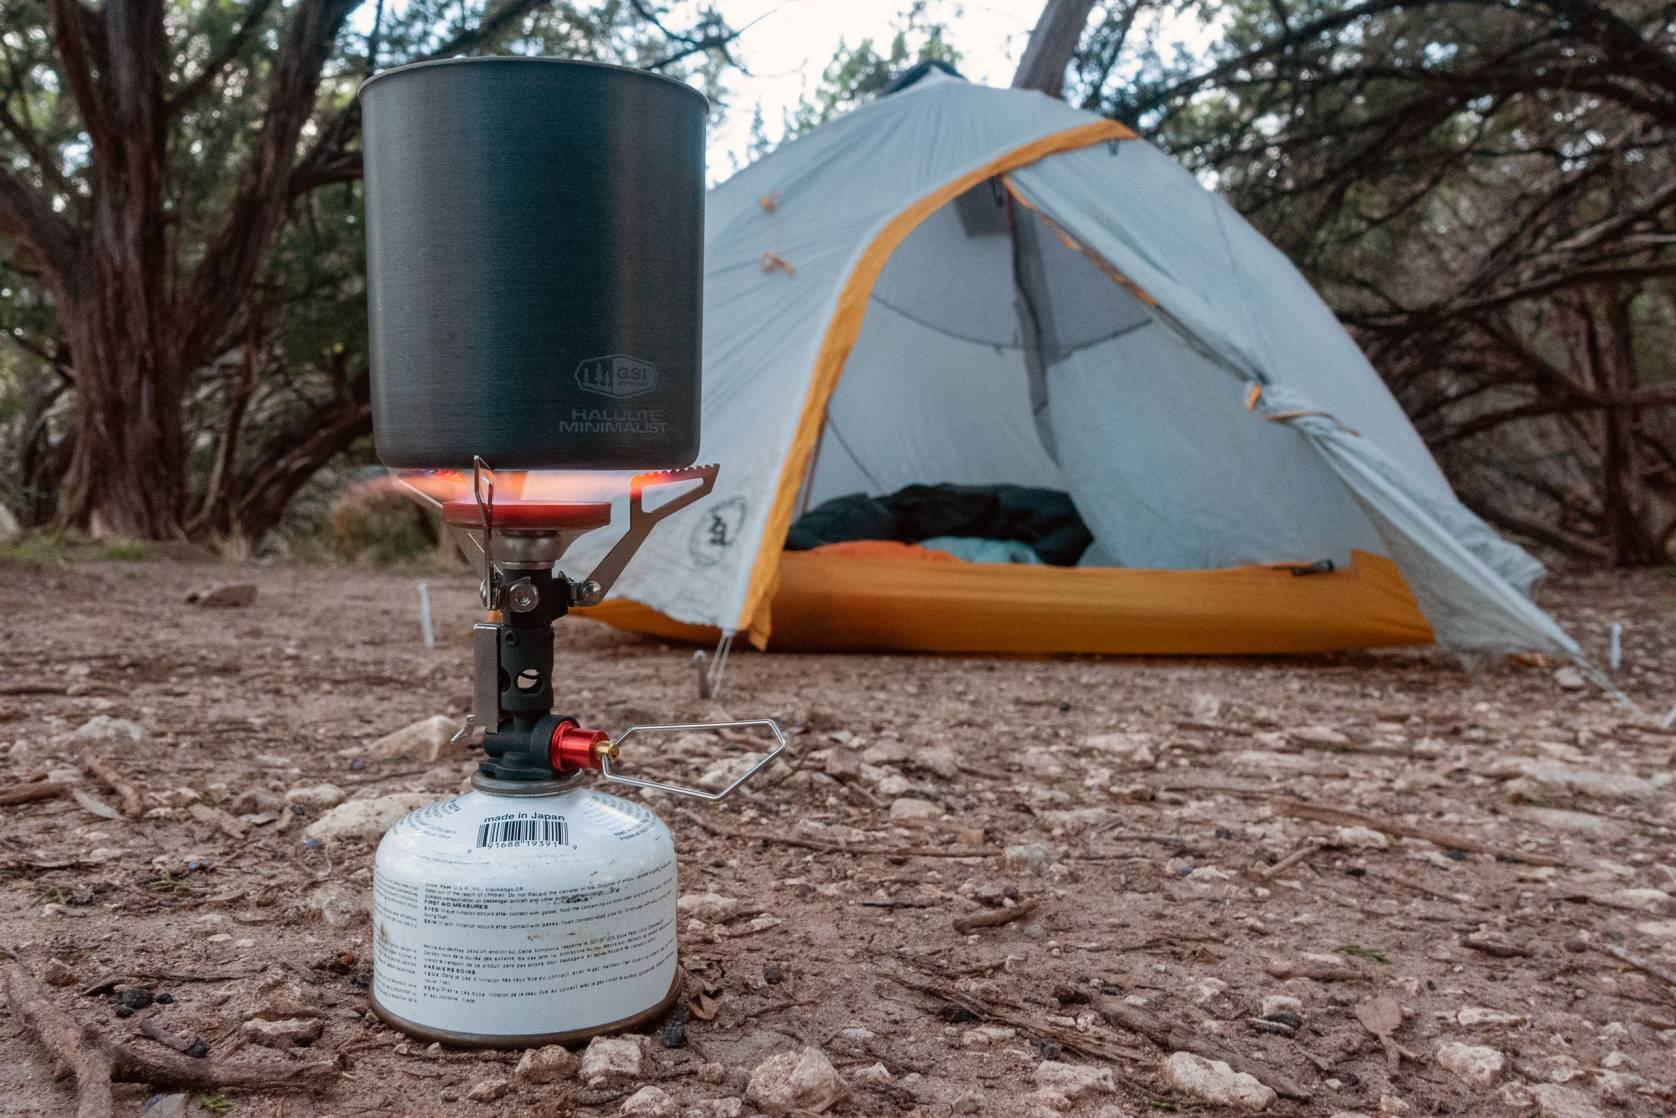 MSR Pocket Deluxe camp stove